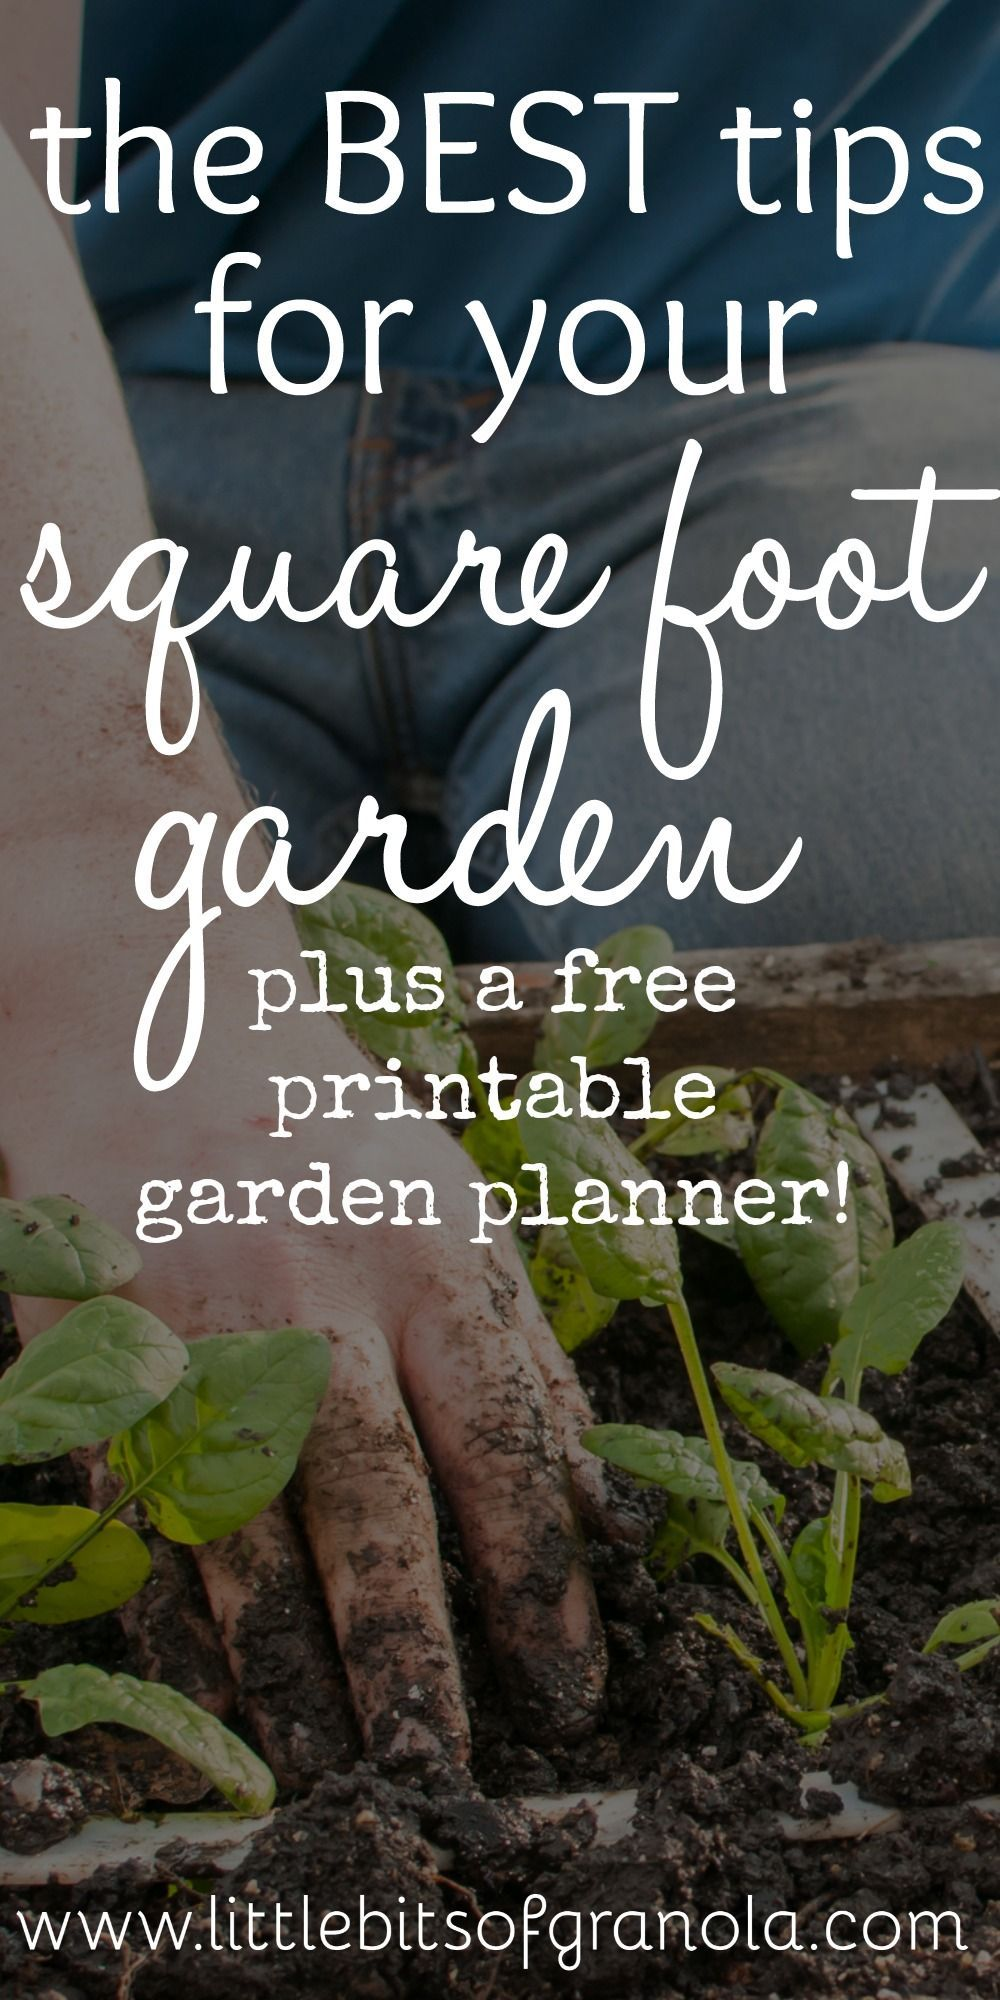 Cant wait to get my garden started These tips will come in handy